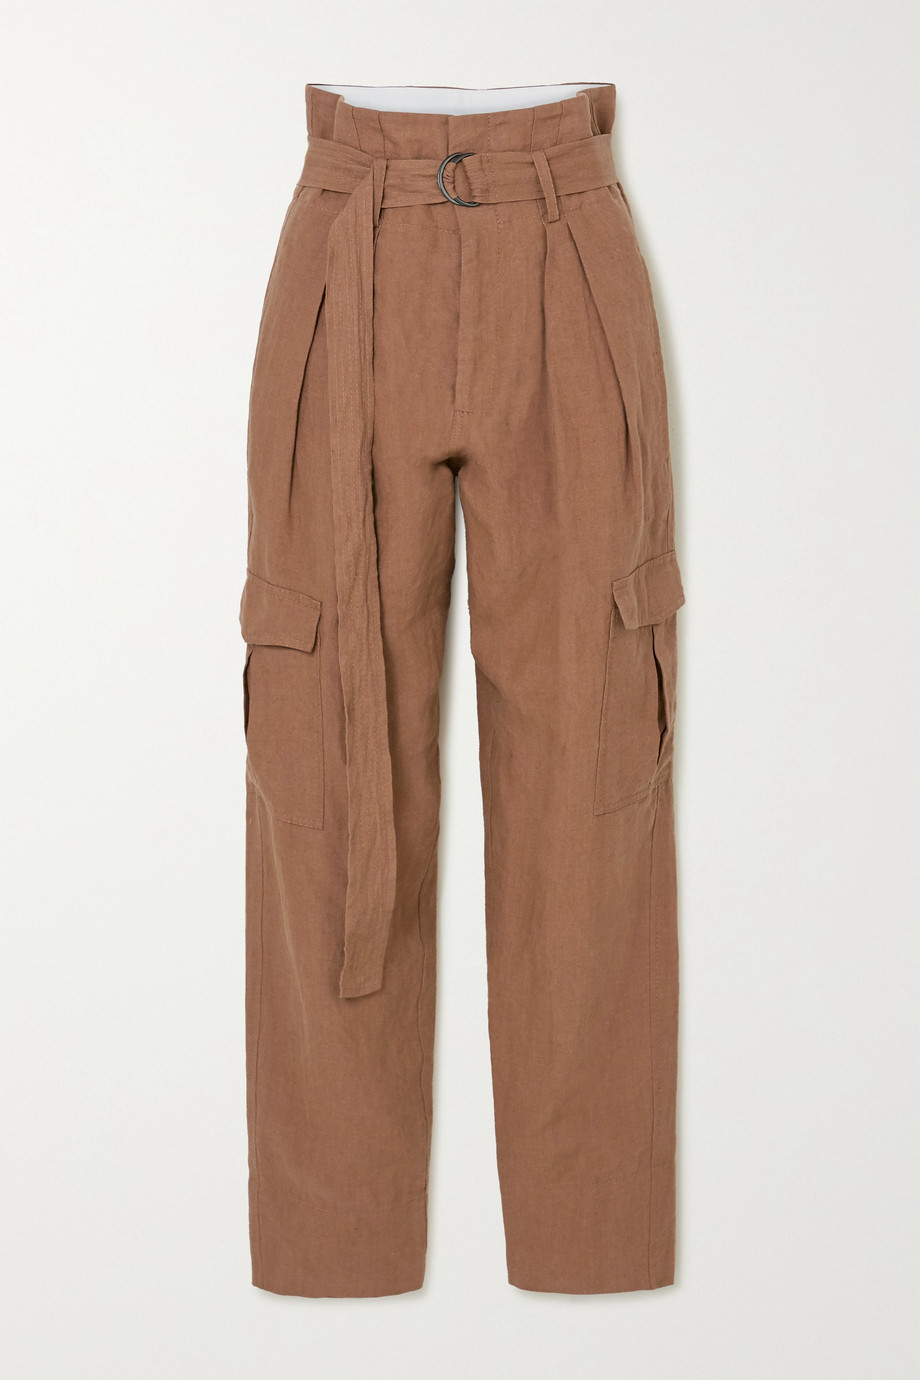 Bassike + Space For Giants belted linen pants